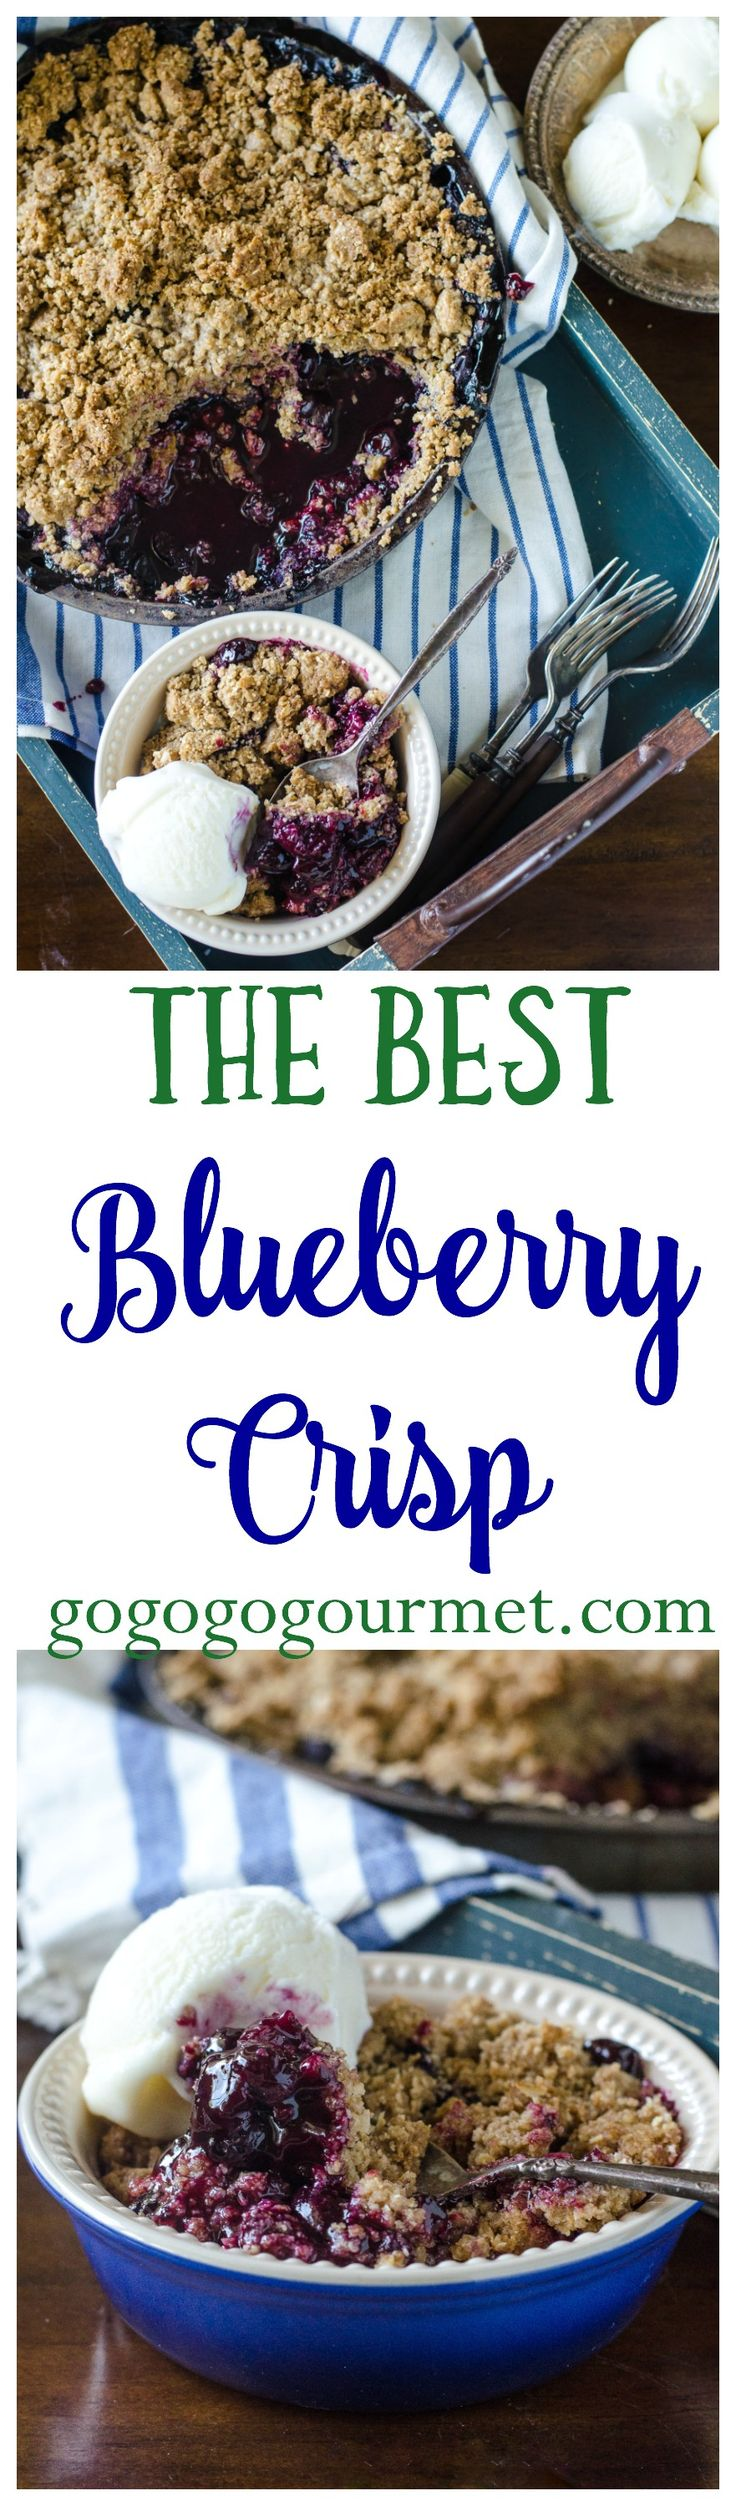 The BEST Blueberry Crisp recipe on all of Pinterest! | Go Go Go Gourmet @gogogogourmet